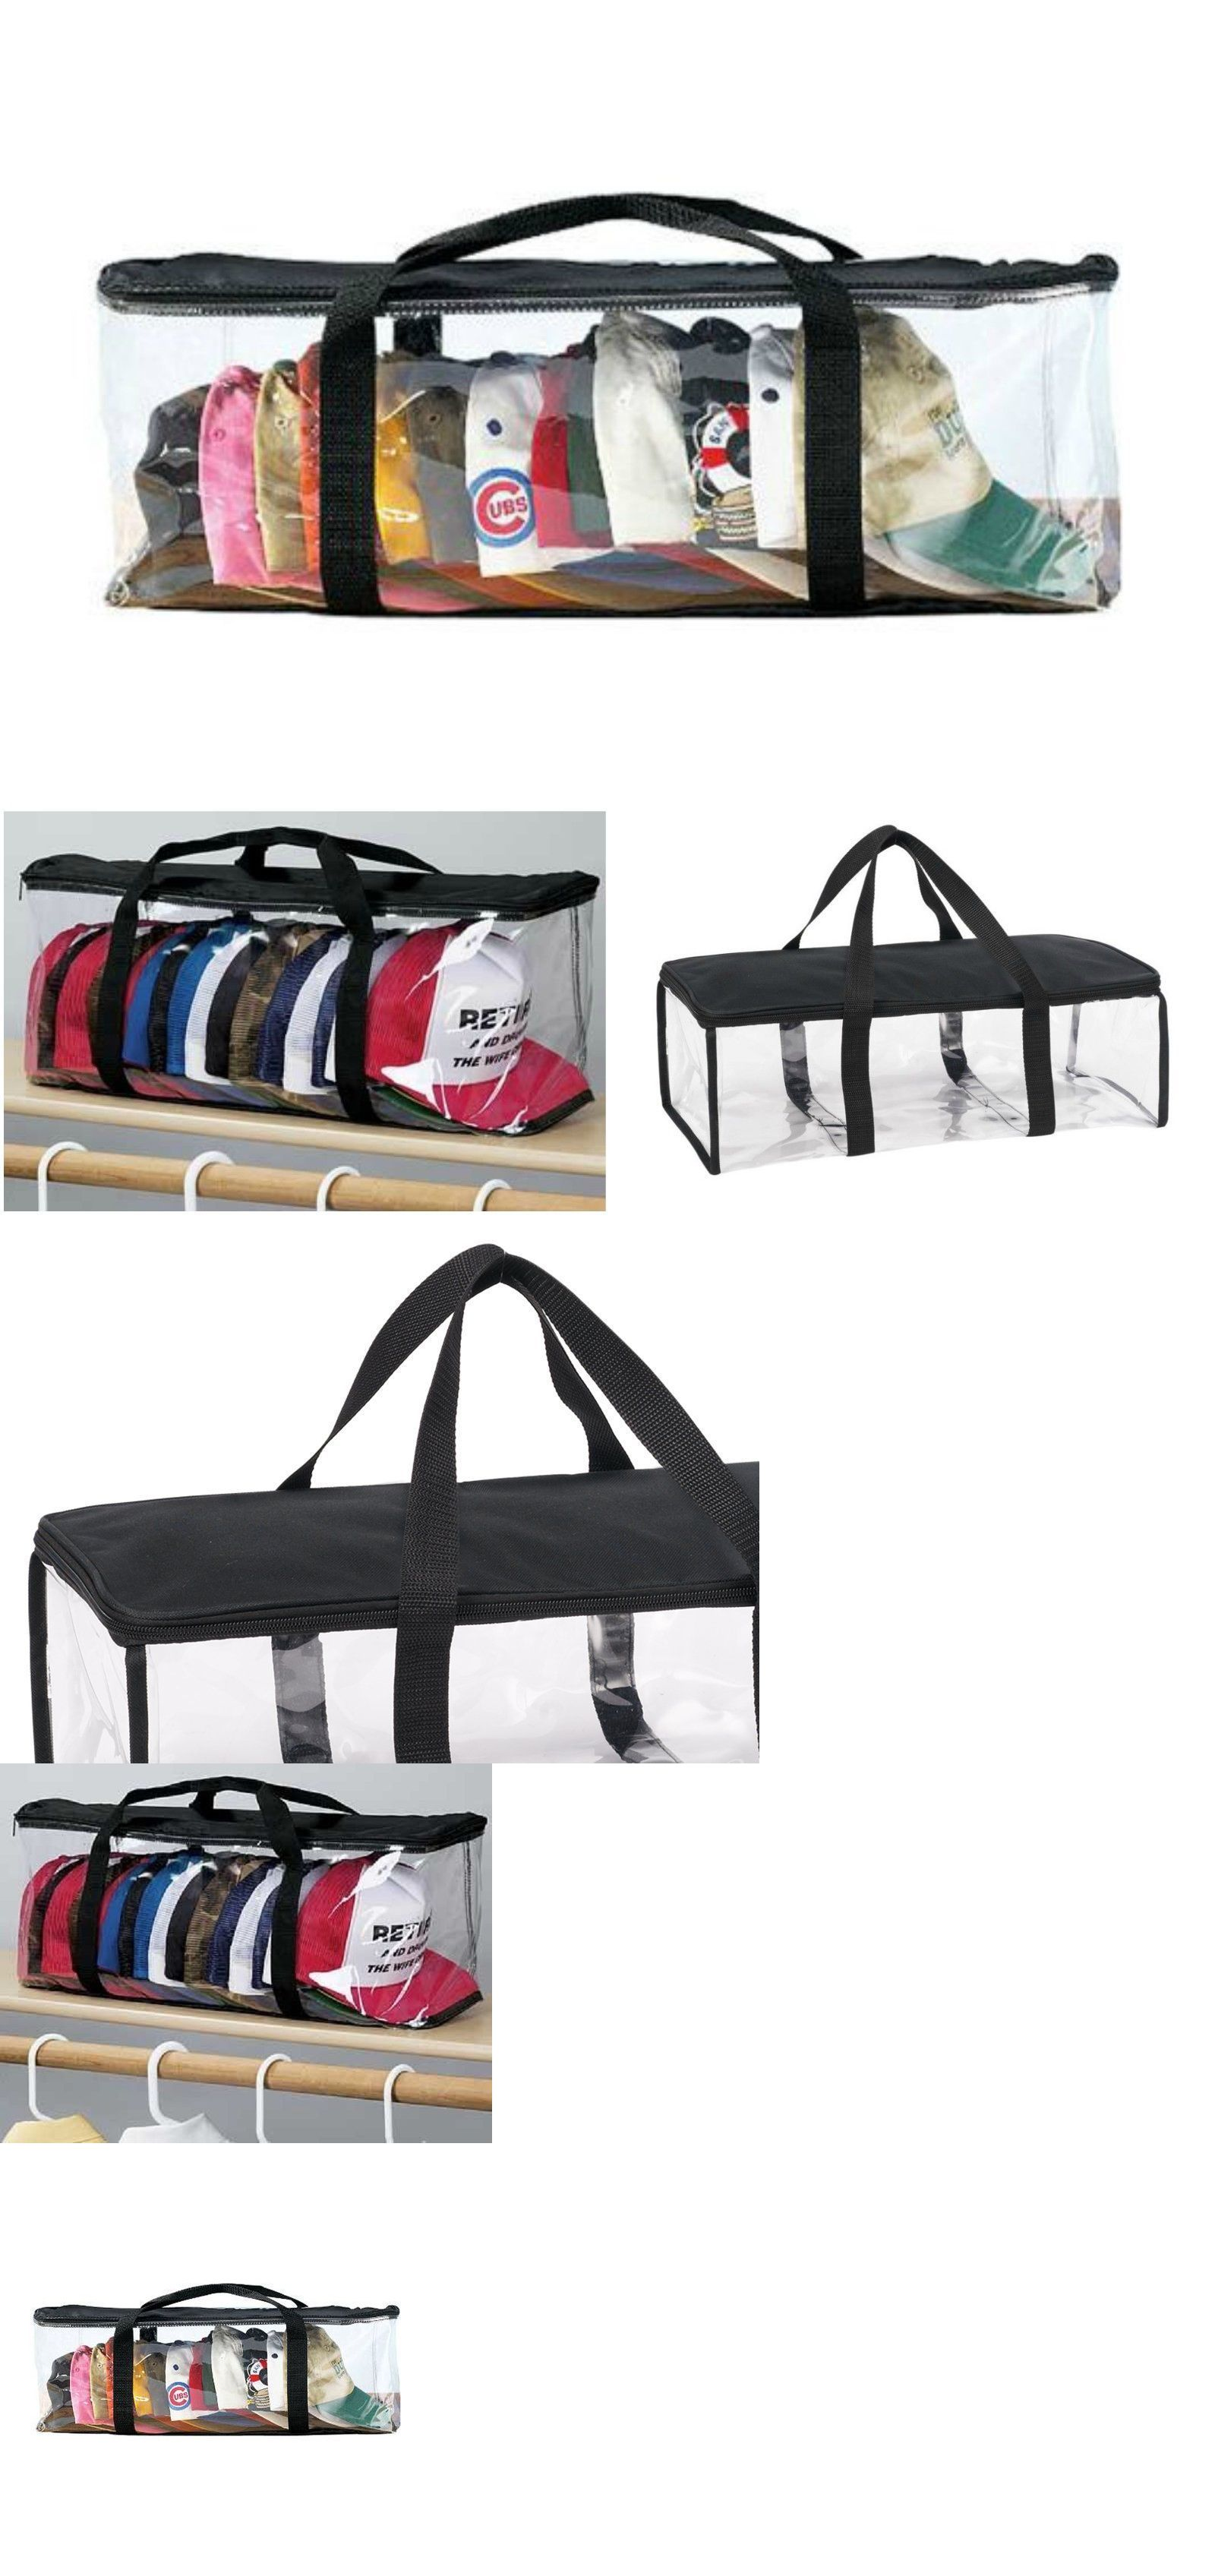 Coat And Hat Racks 22656 Convenient Dust Free Baseball Cap Storage Hat Organizer Fitted Rack Handles Ball Baseball Caps Storage Hat Organization Cap Organizer